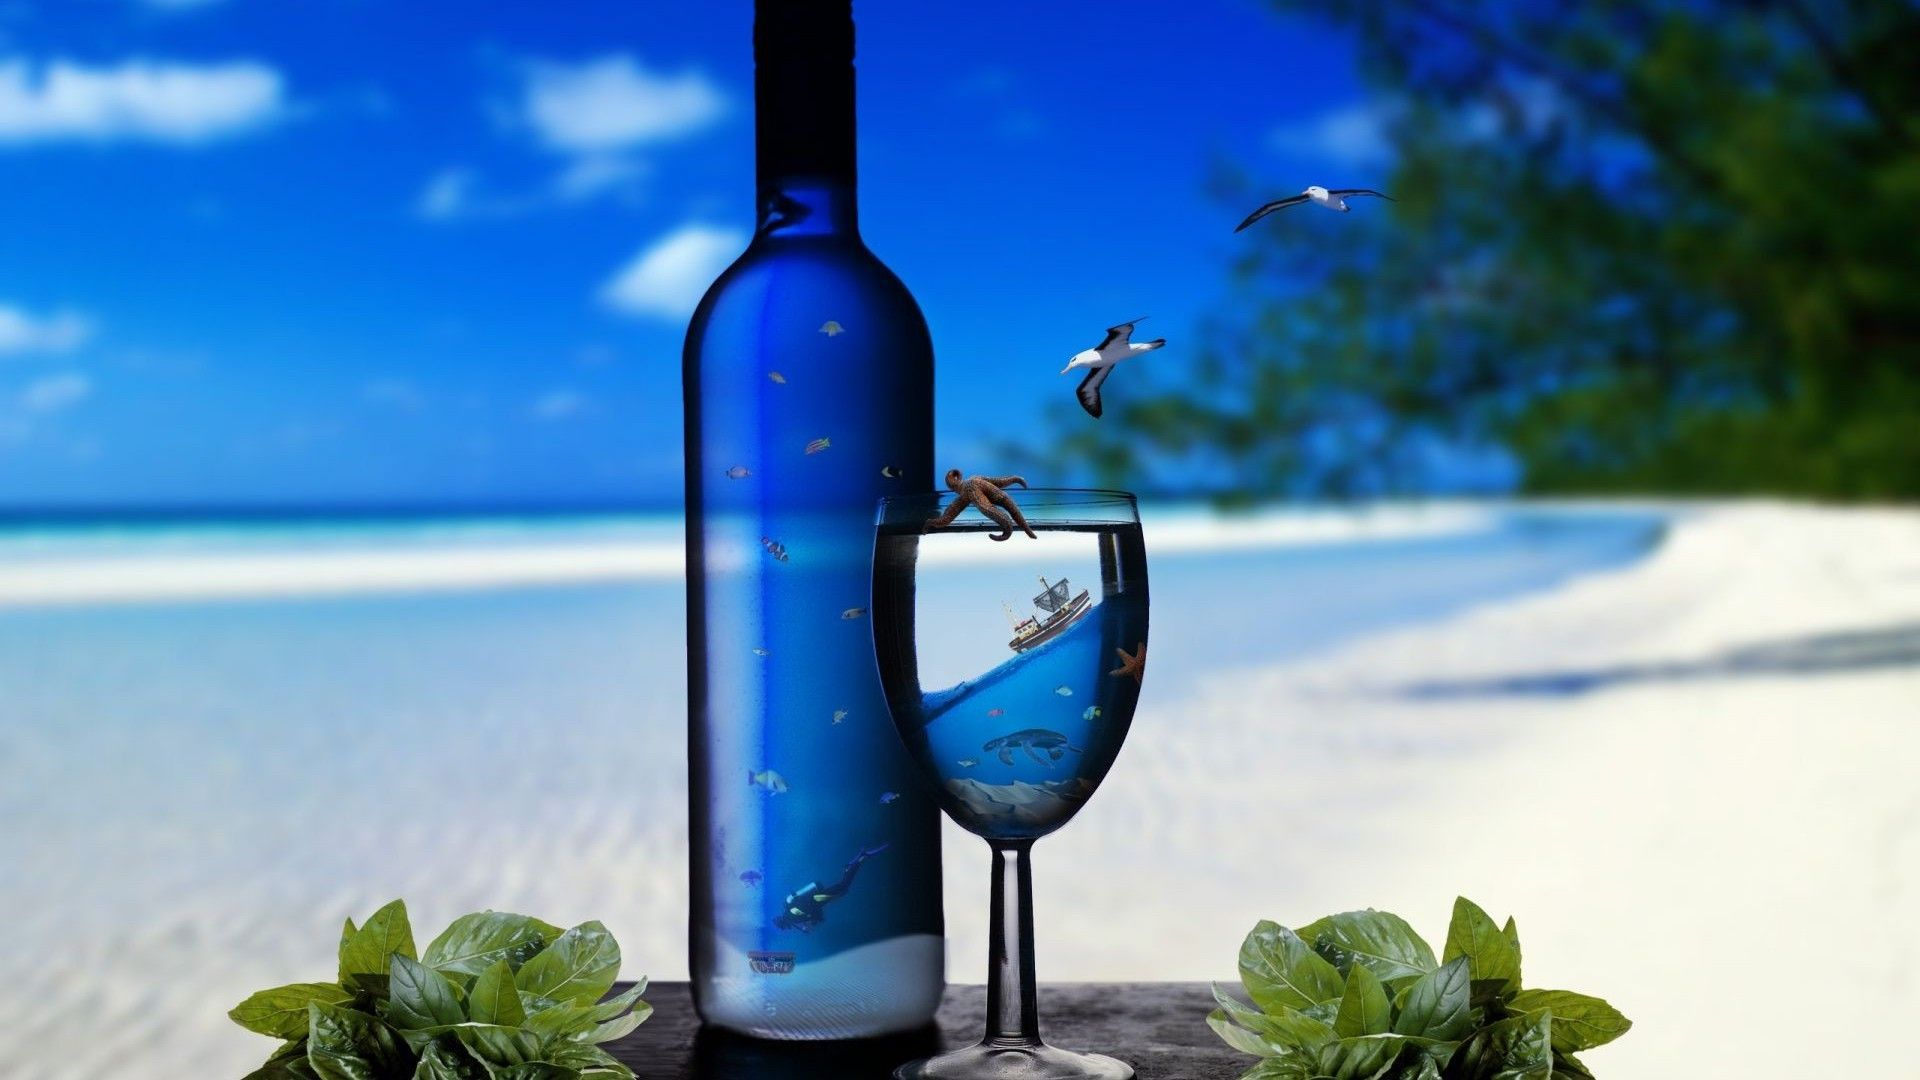 Bottle Beach and Wine Bottle Wallpaper HD Free Download | Download ... Background Images Blue Hd